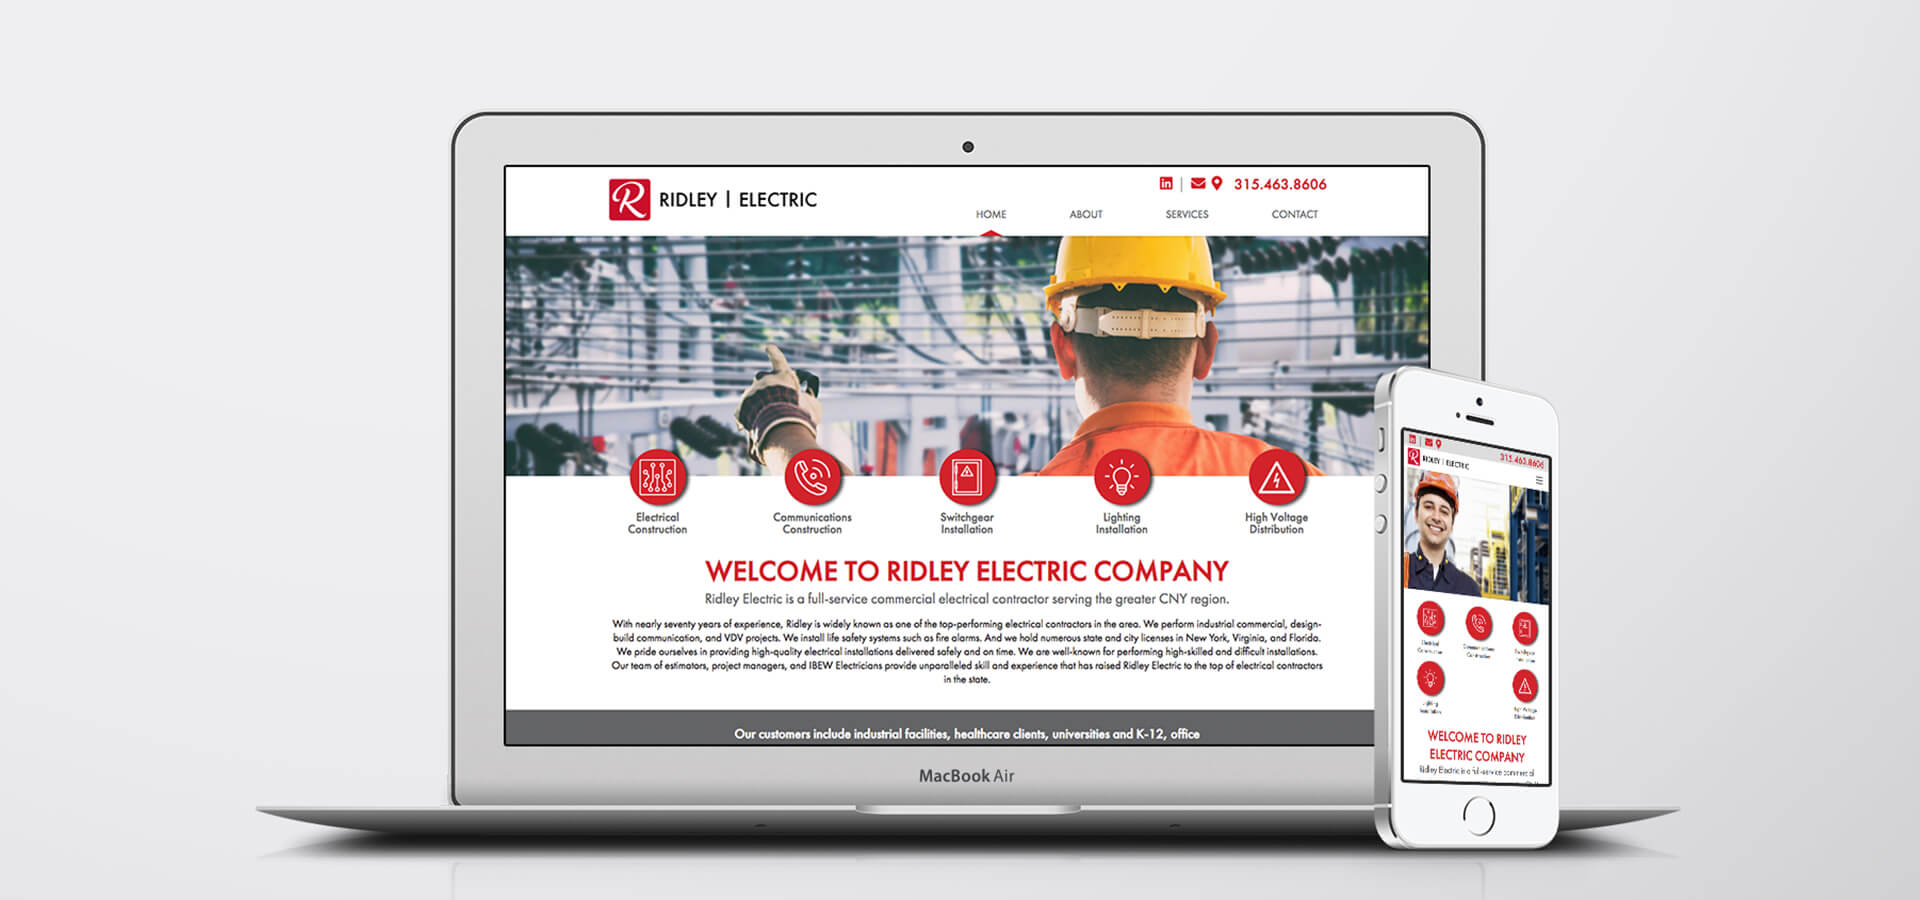 Ridley Electric website on laptop and iphone